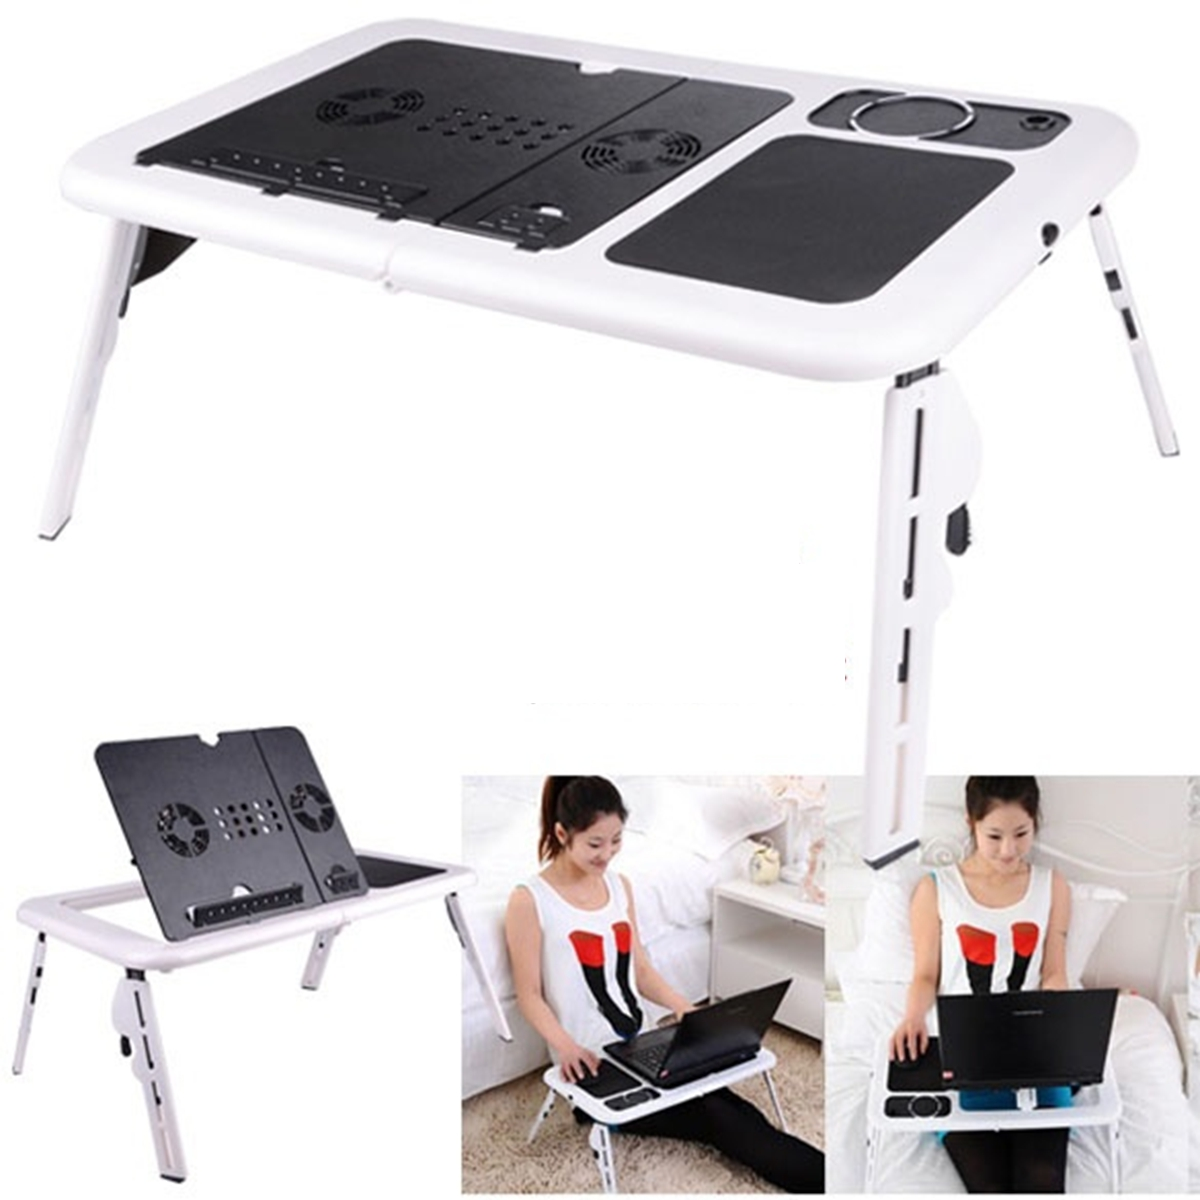 Laptop Desk Foldable Adjustable Table Bed Sofa Stand Tray with USB Cooling Fan